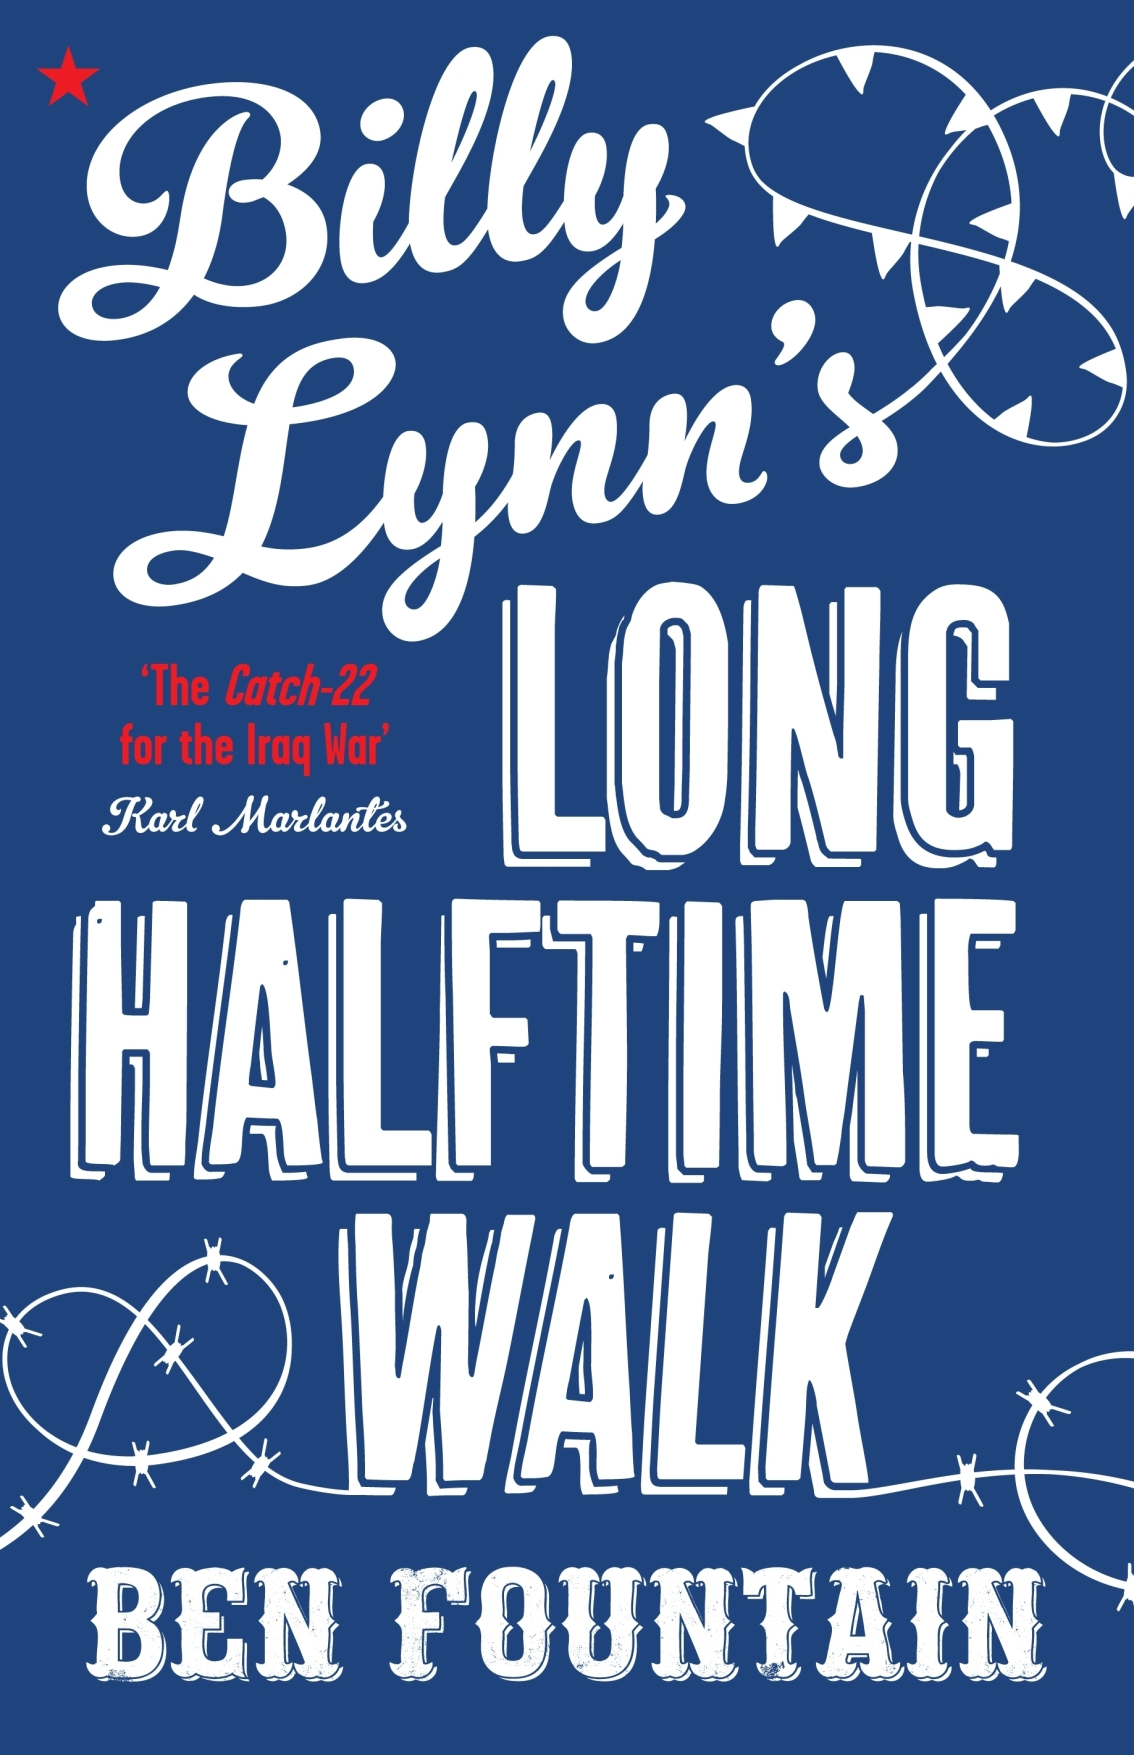 The Relevance of Billy Lynn's Long Half-Time Walk